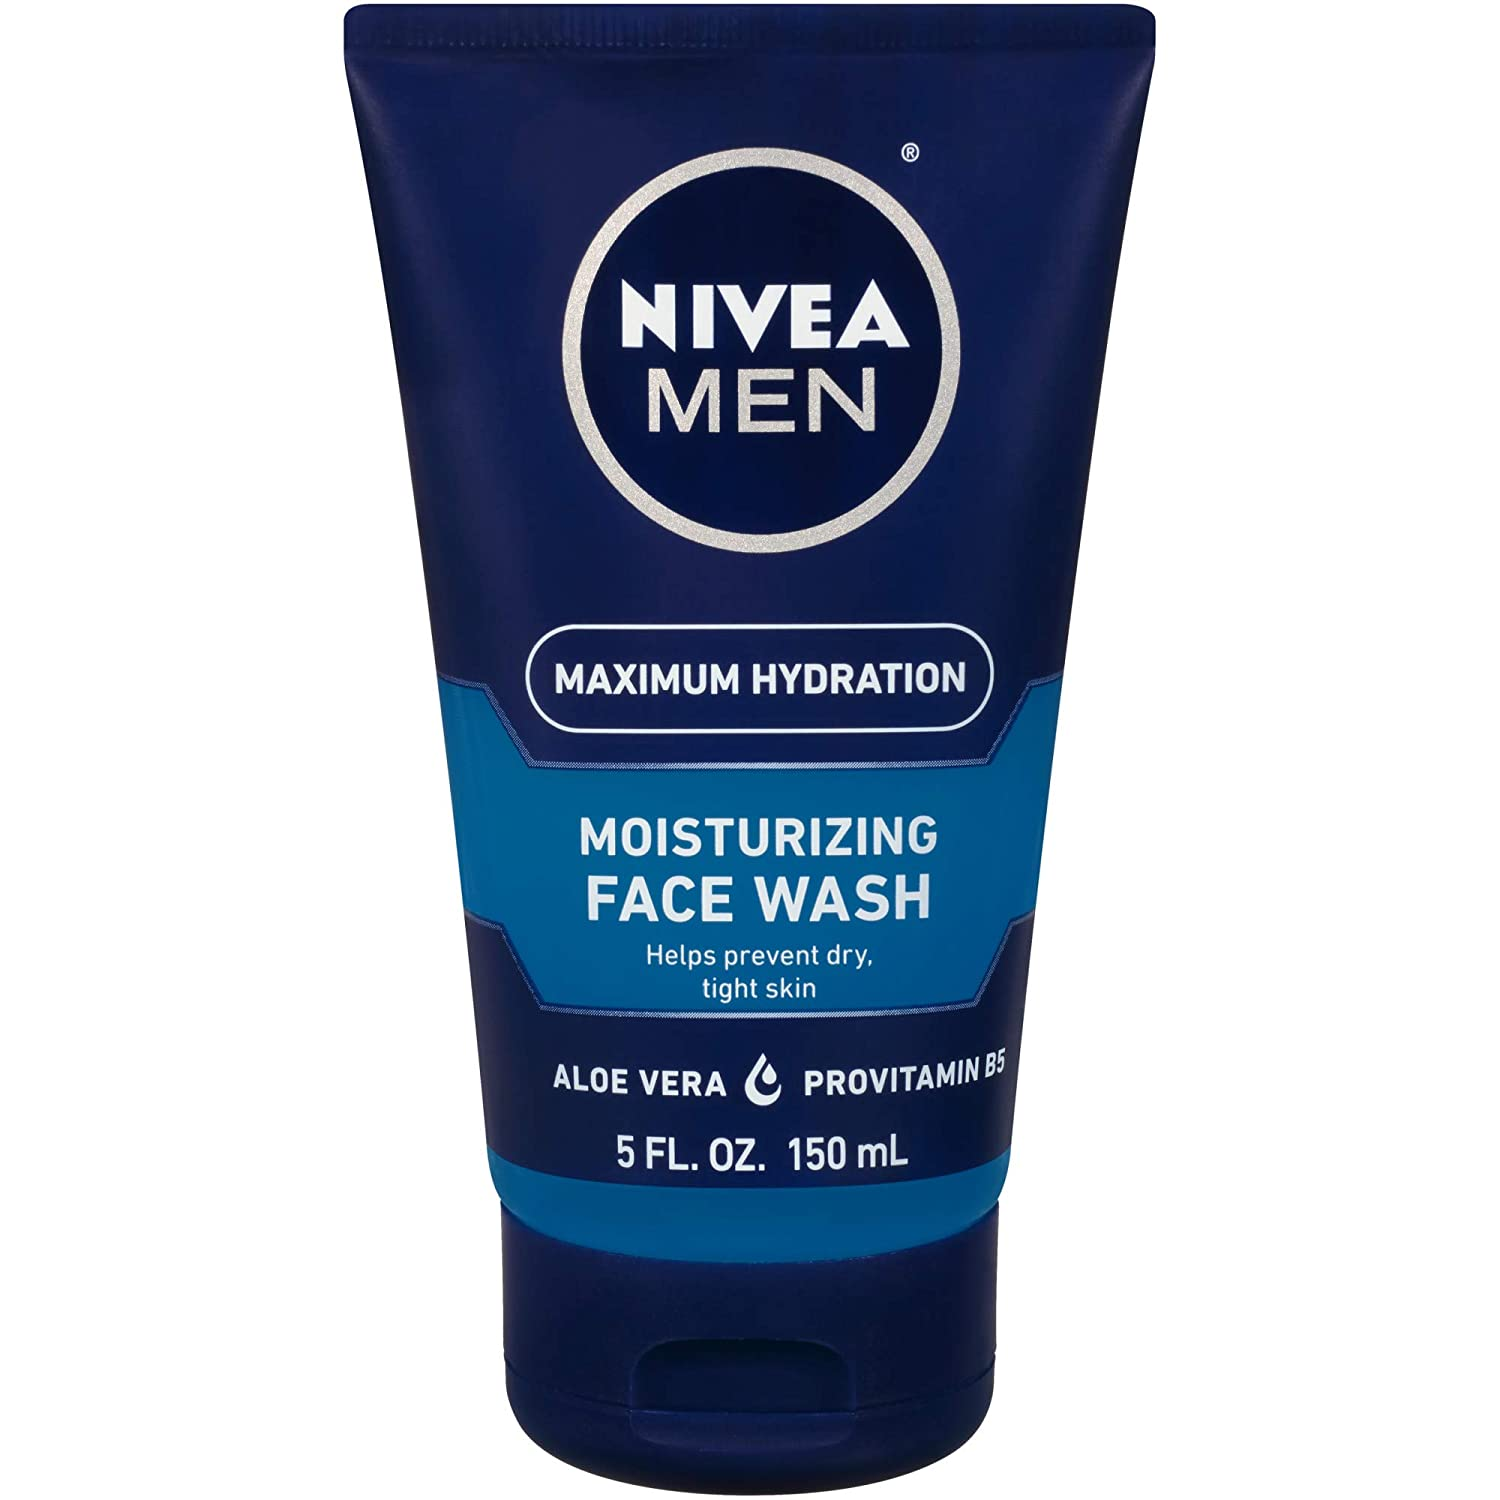 NIVEA Men Maximum Hydration Moisturizing Face Wash - Helps Prevent Dry Tight Skin - 5 fl. oz. Tube